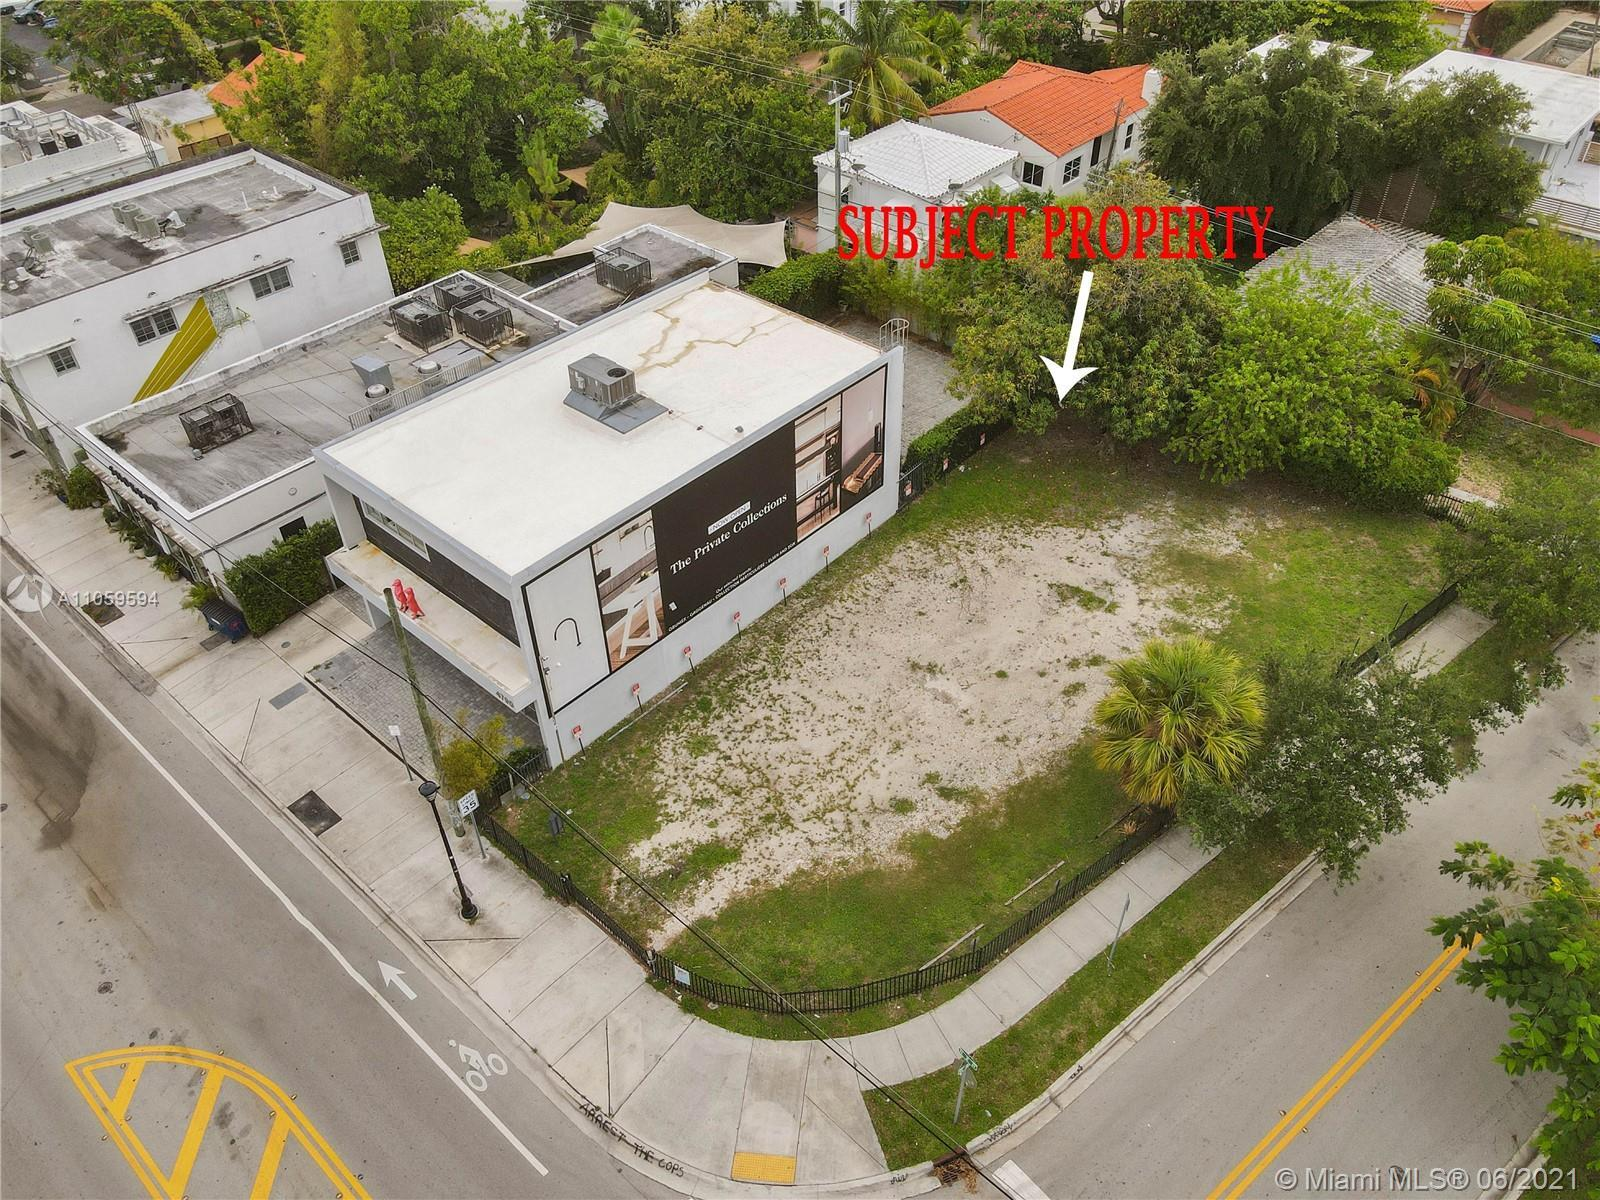 LAST VACANT COMMERCIAL/ RESIDENTIAL LOT ( corner ) ON NE 2avenue. High commuter traffic. Other vacan